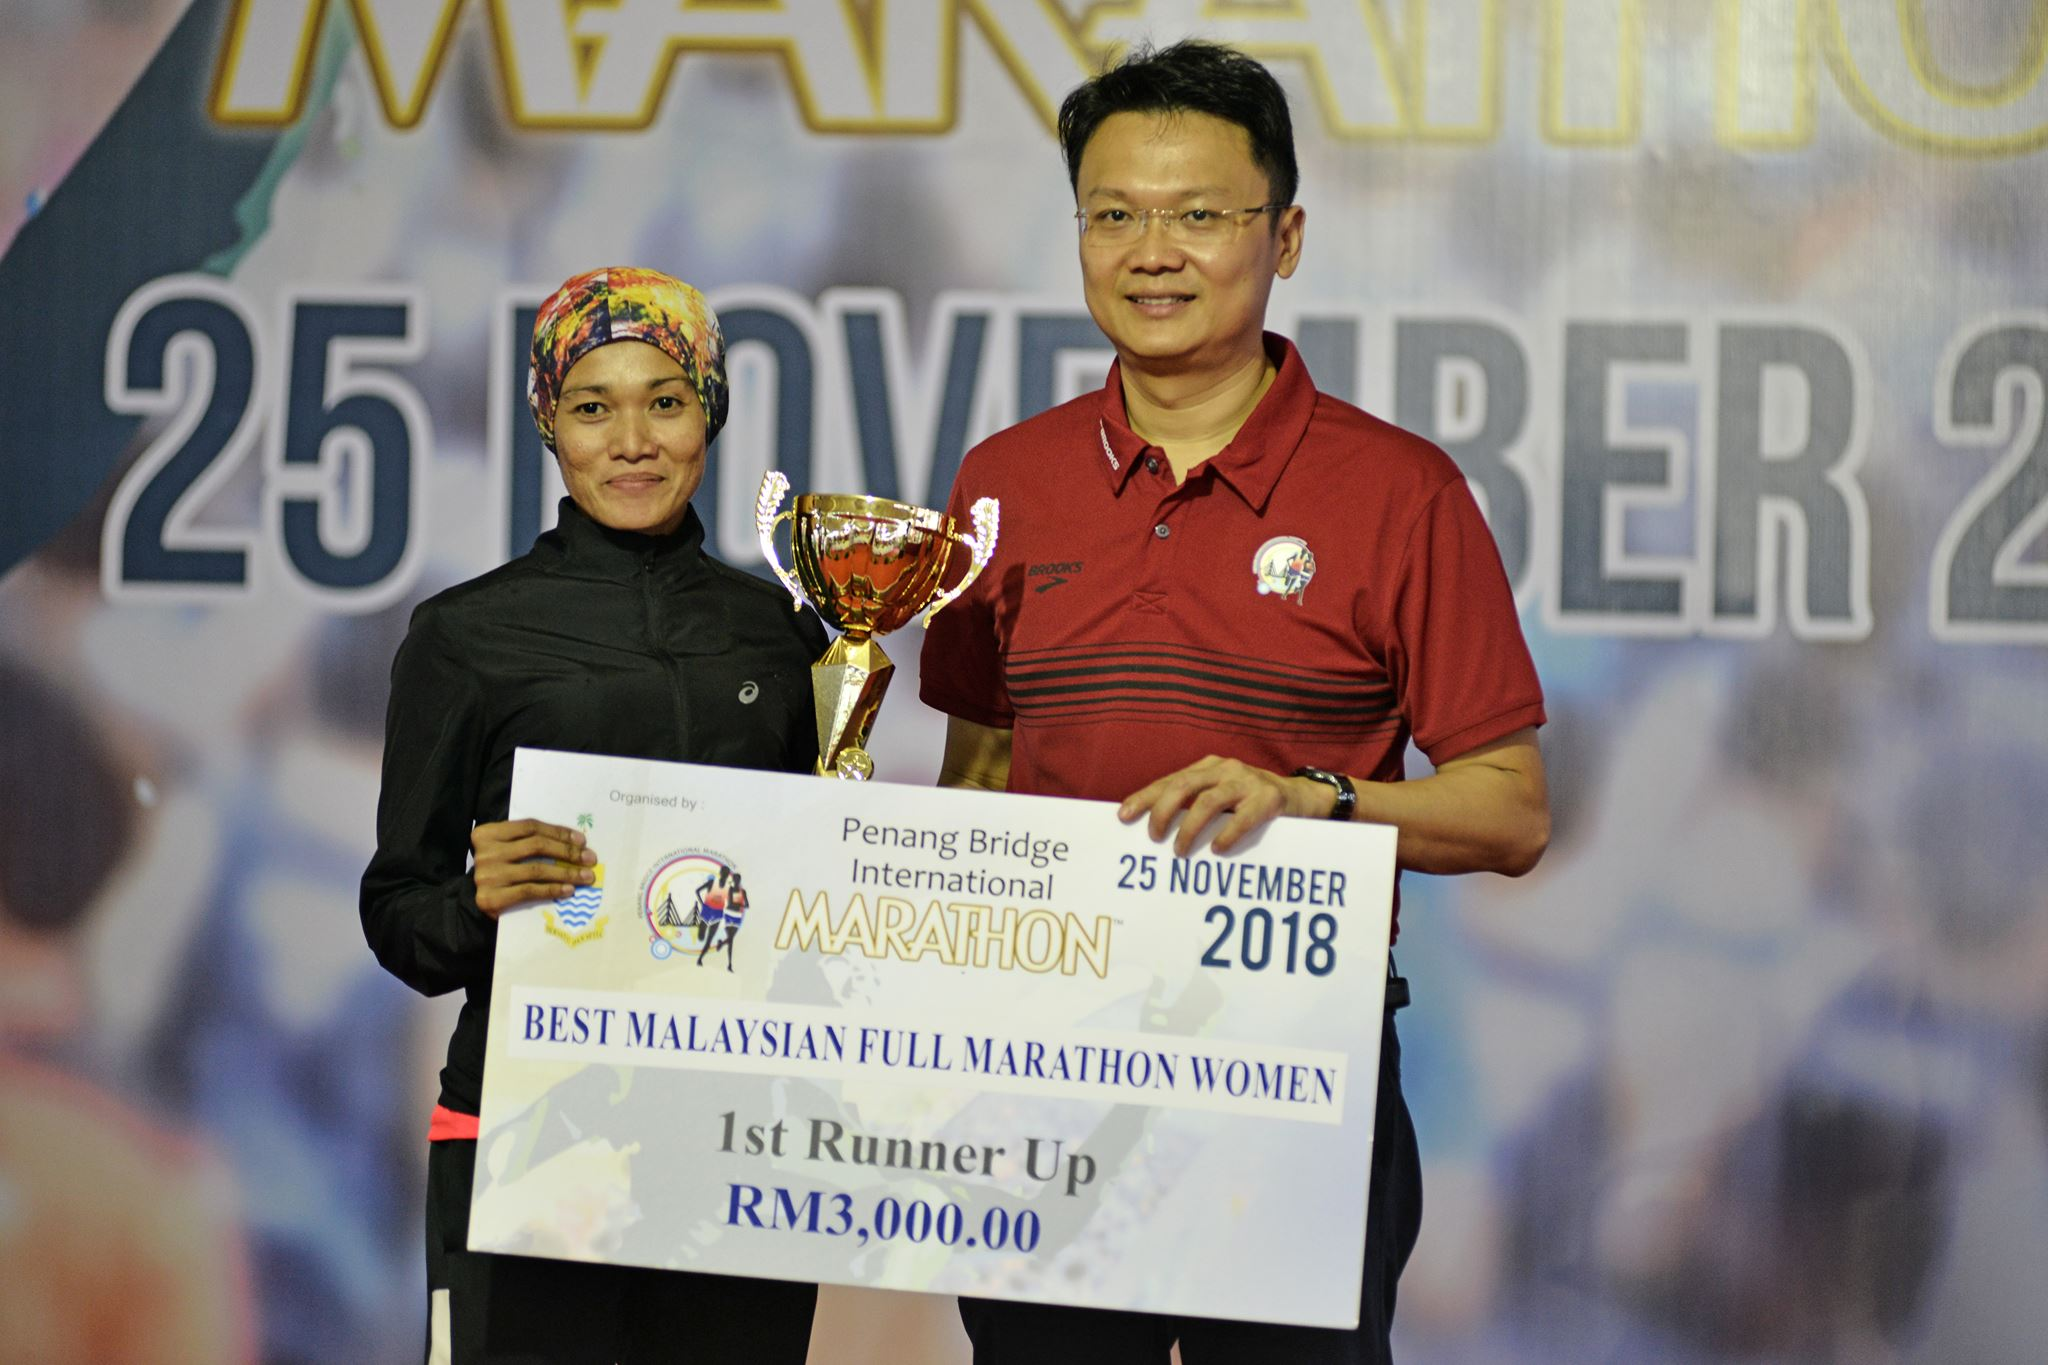 Nur Amelia was first runner-up in the Full Marathon Women's Open, Malaysian category, last year.